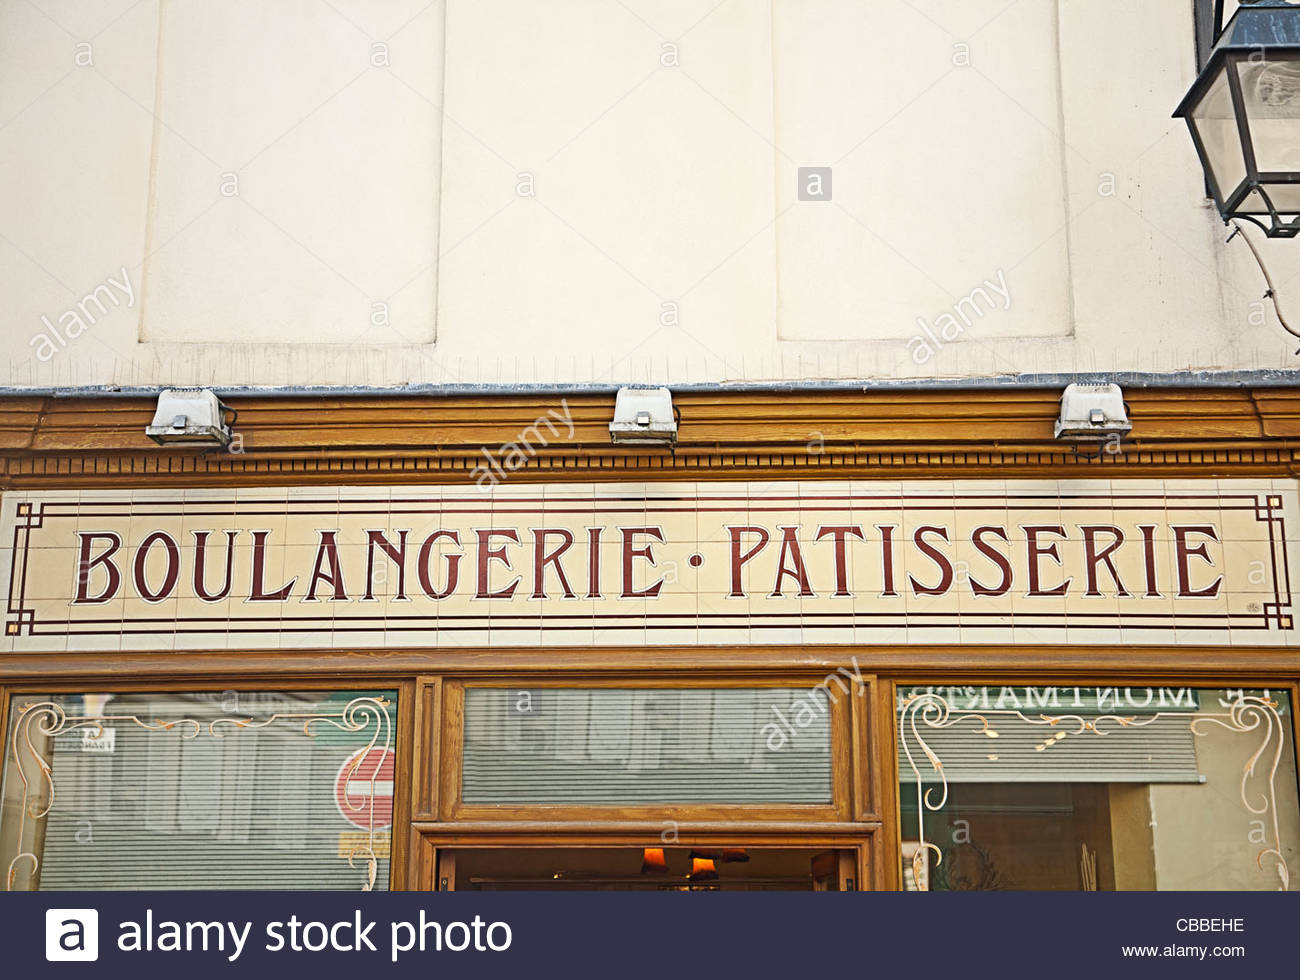 Boulangerie sign on French street - Stock Image